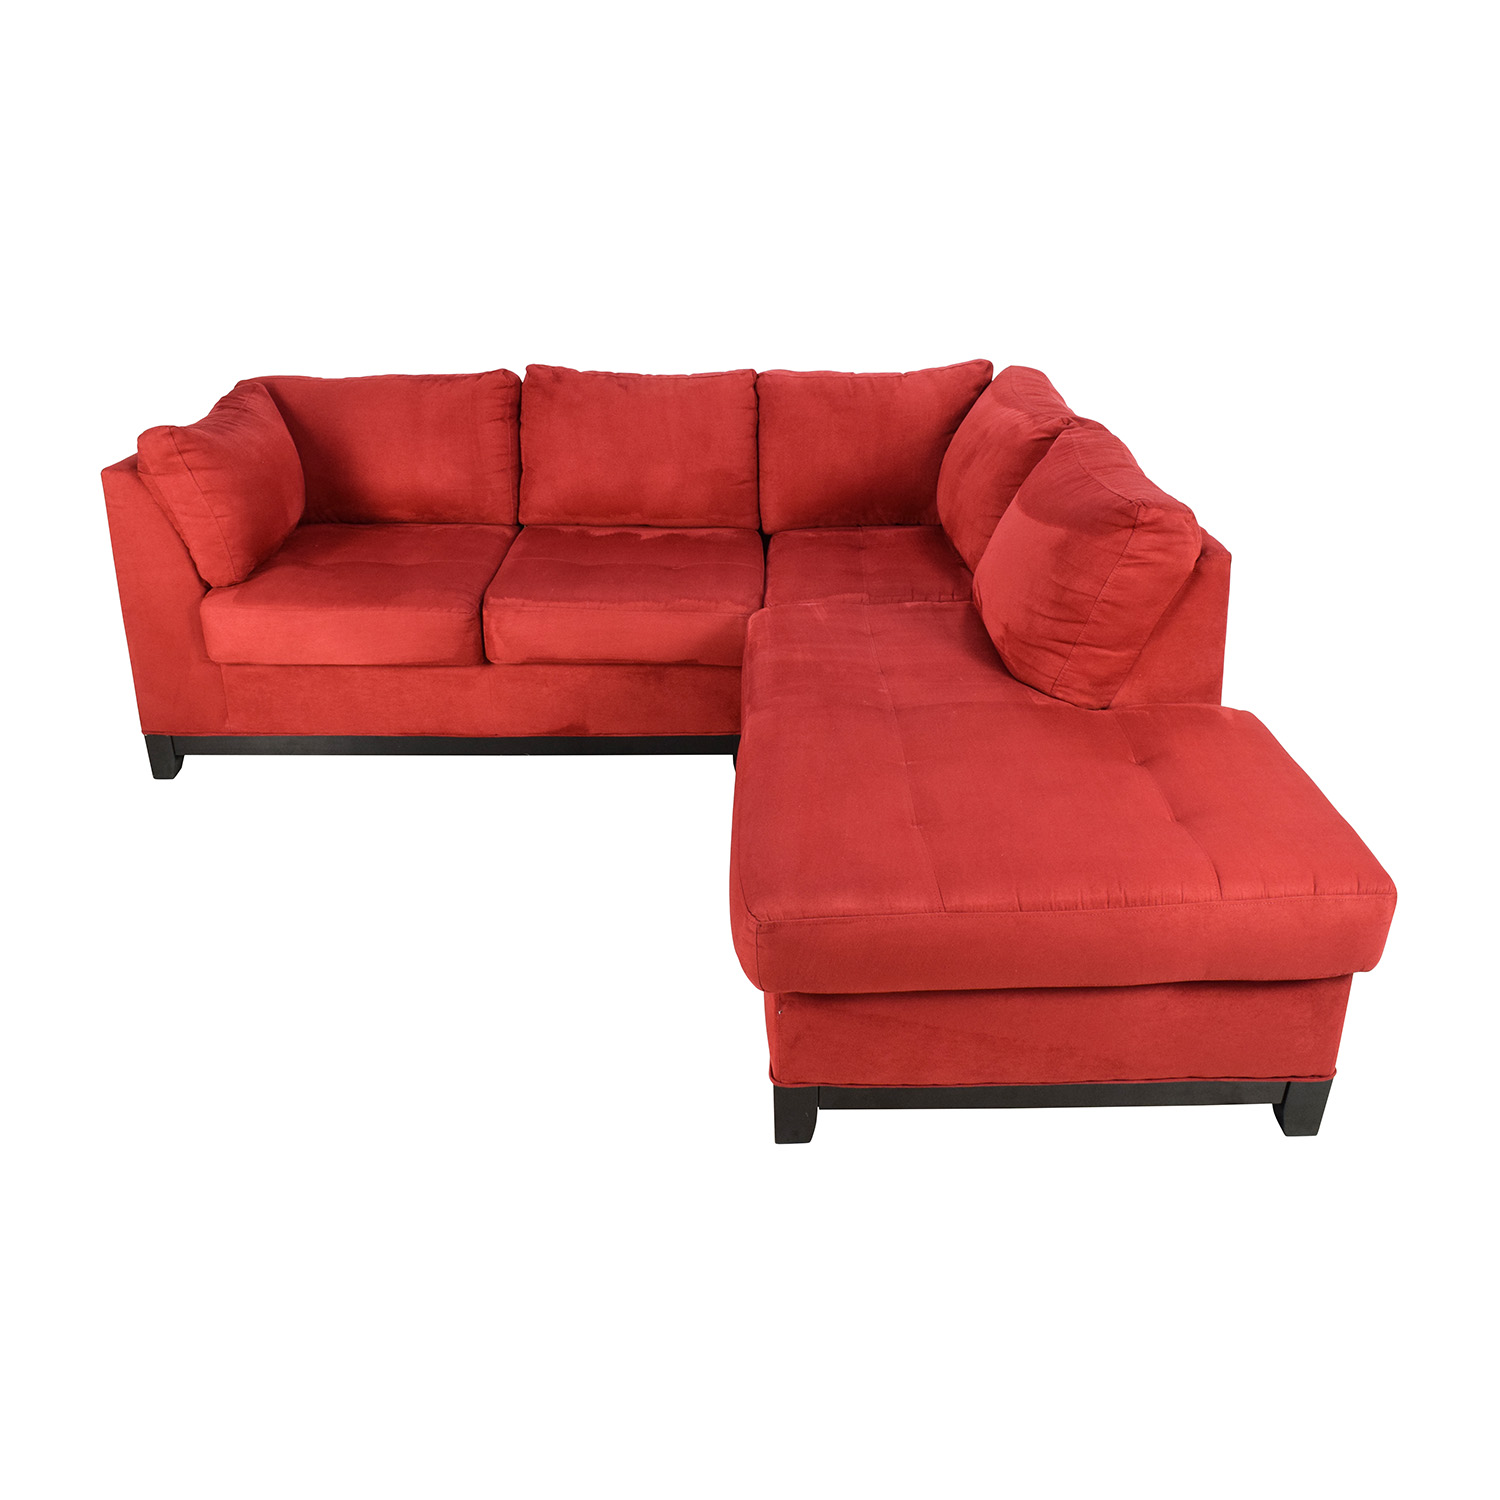 raymour and flanigan sectional sofas gold sparrow frankfort convertible sofa bed review 67 off zella red